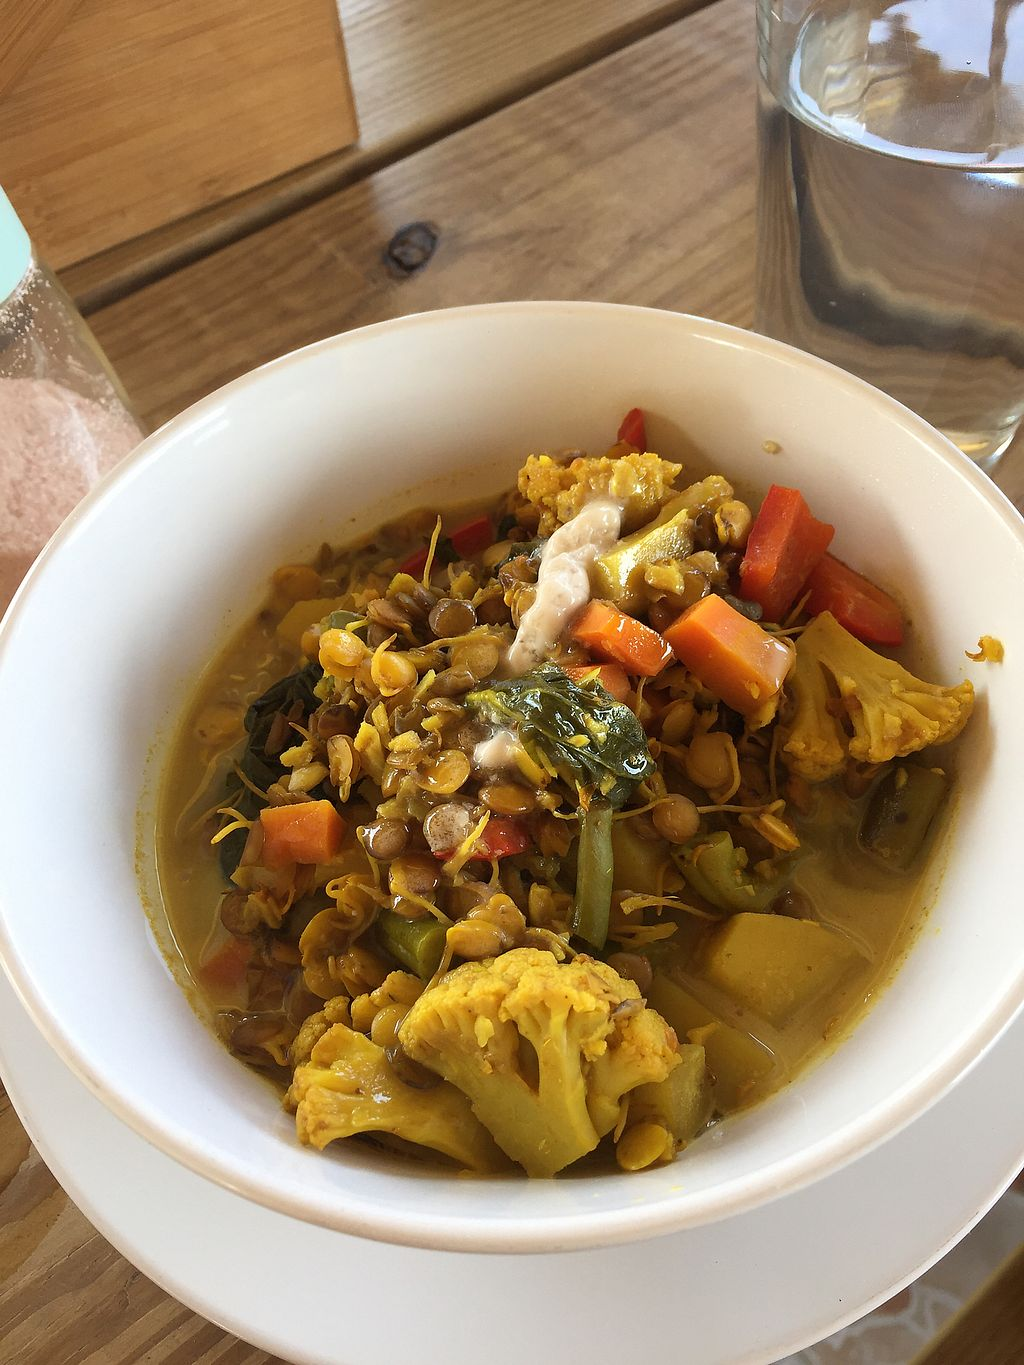 "Photo of Vitamin D Cafe  by <a href=""/members/profile/jespernoren"">jespernoren</a> <br/>Vegan curry, NOMNOM <br/> March 21, 2018  - <a href='/contact/abuse/image/96070/373911'>Report</a>"